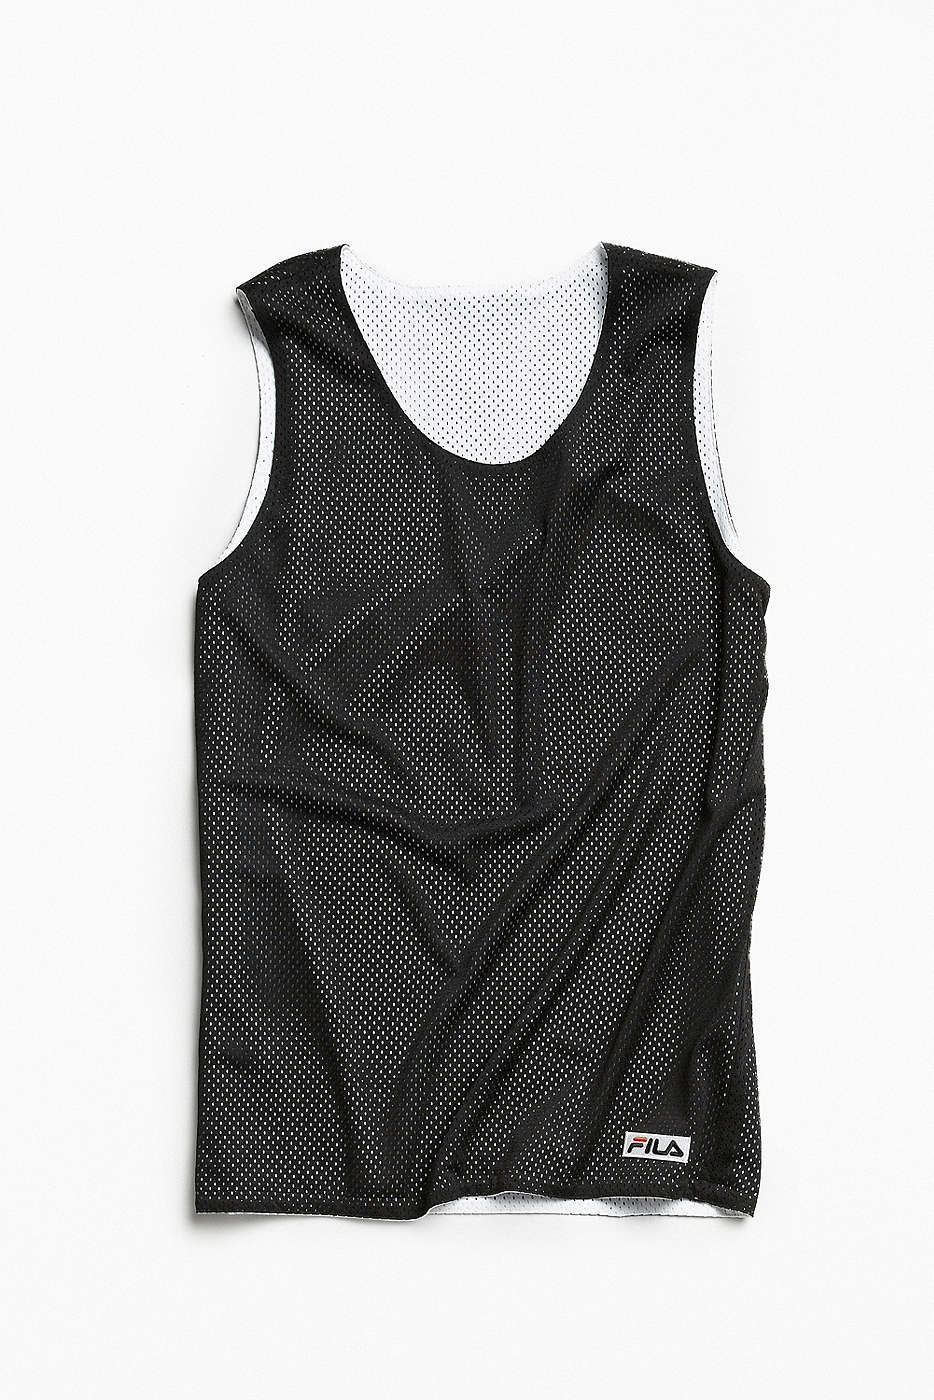 Basketball Collection by FILA + UO, Mesh Tank Top Back